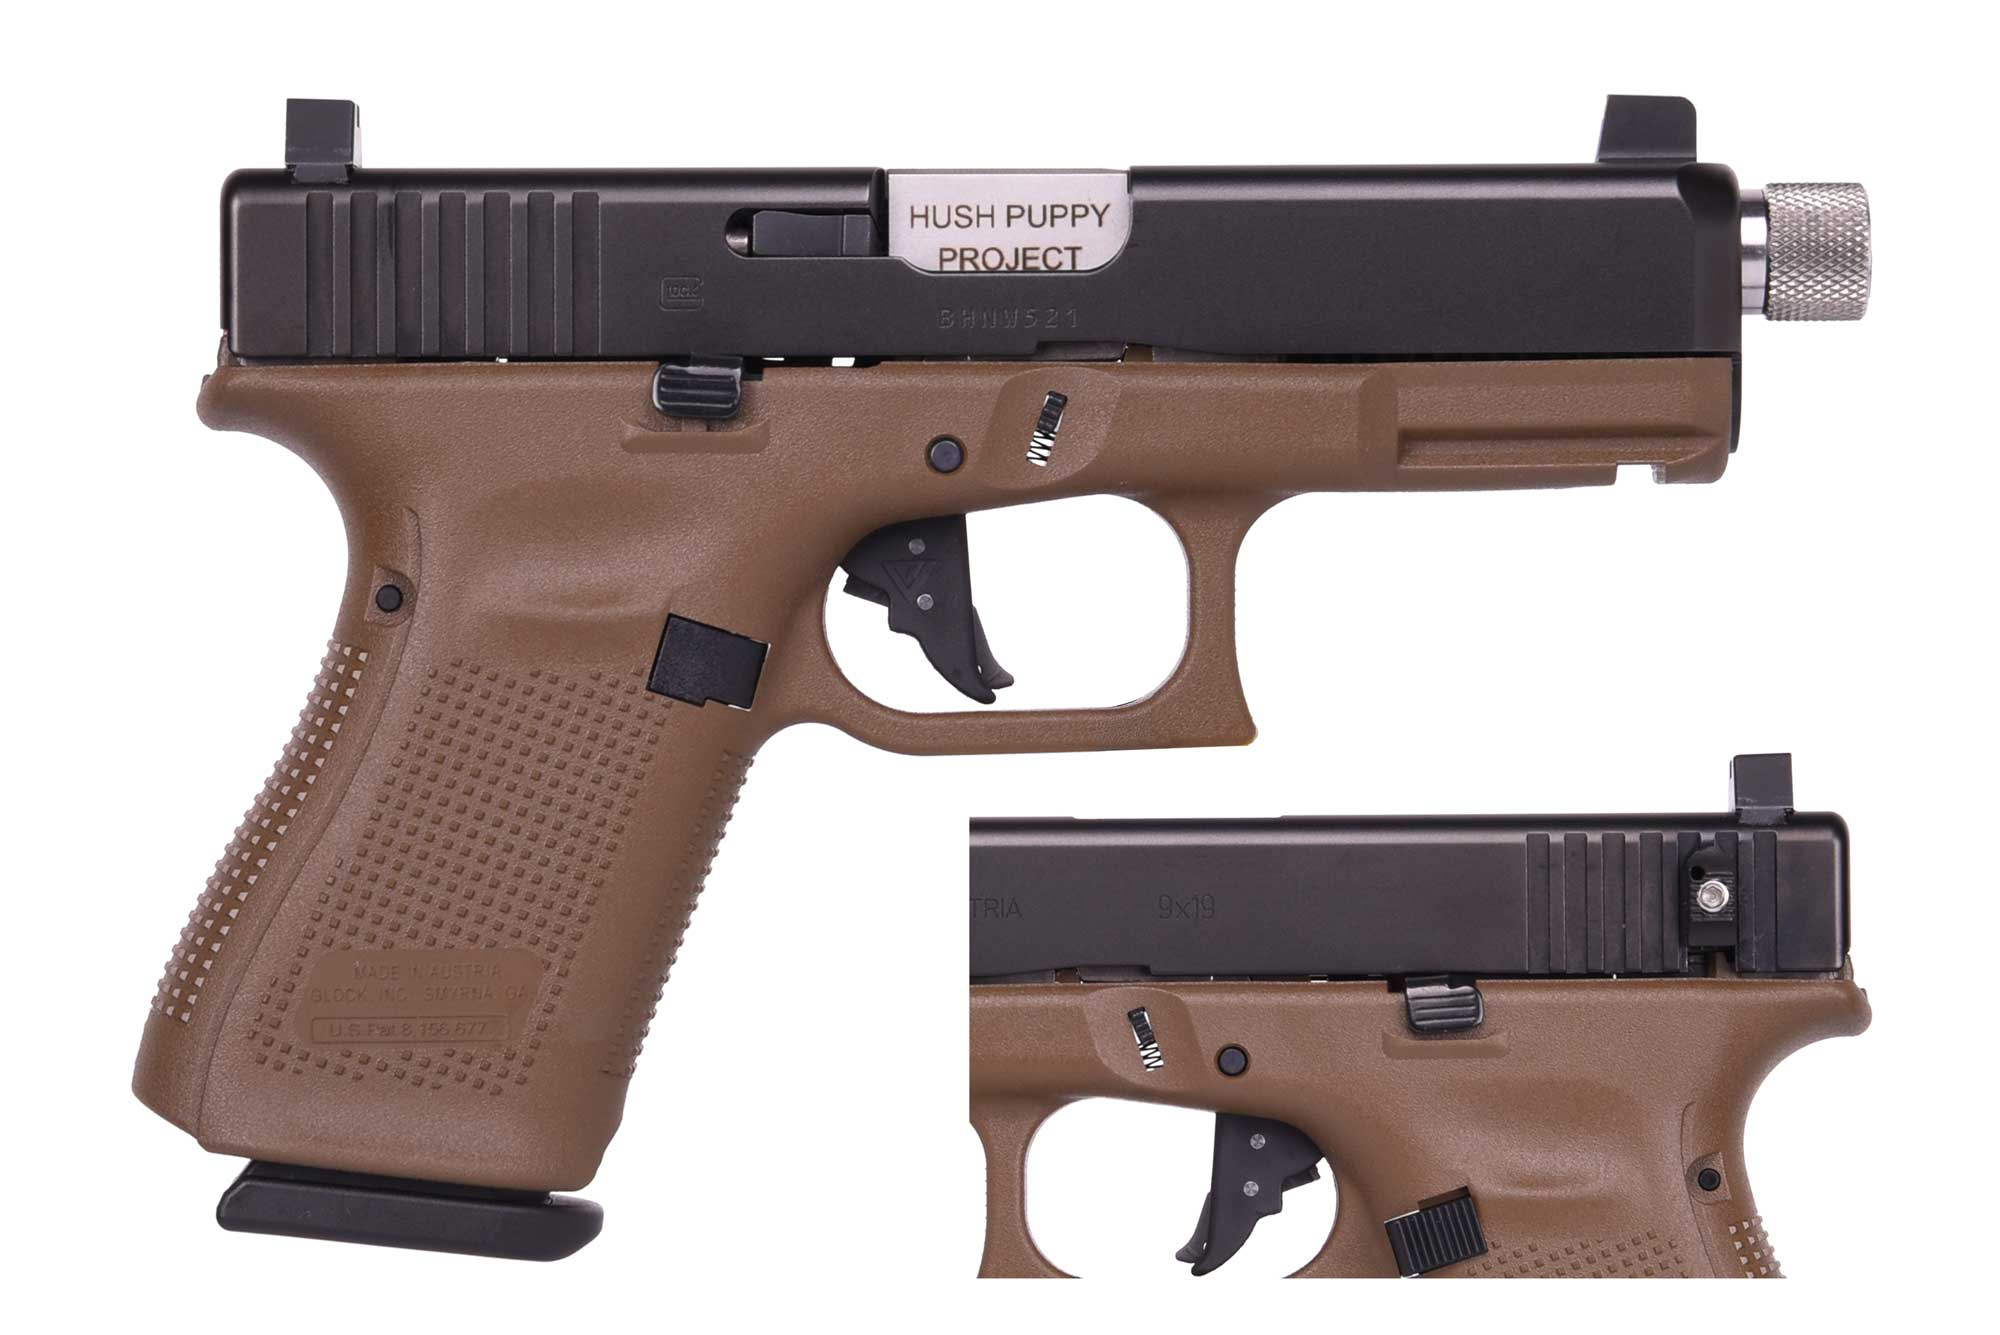 Hush Puppy Project HPP G19 G5 9MM